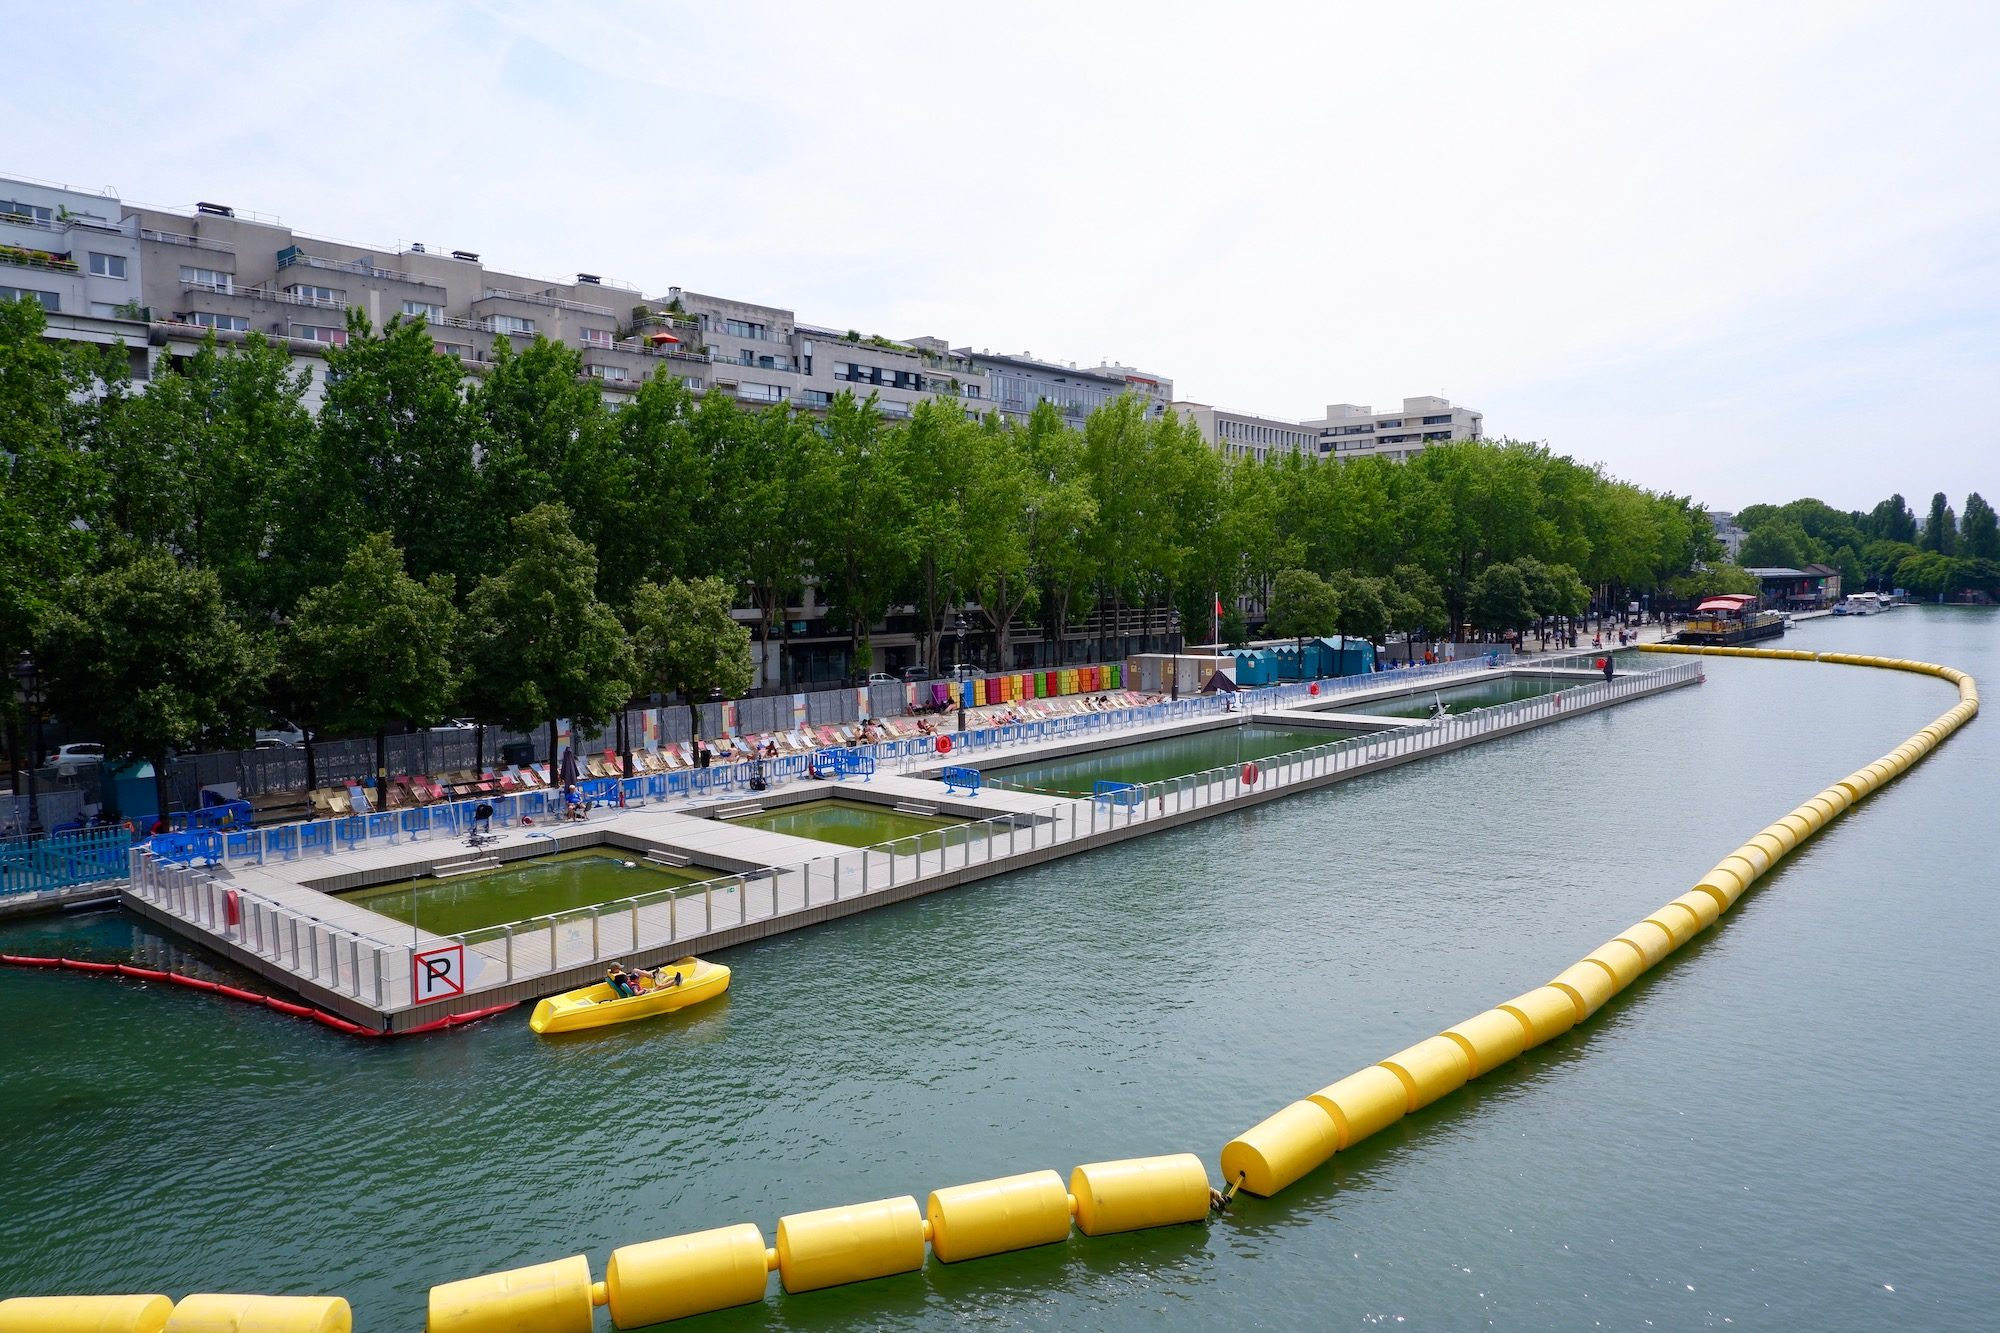 The swimming pool at the Canal de l'Ourcq in Paris